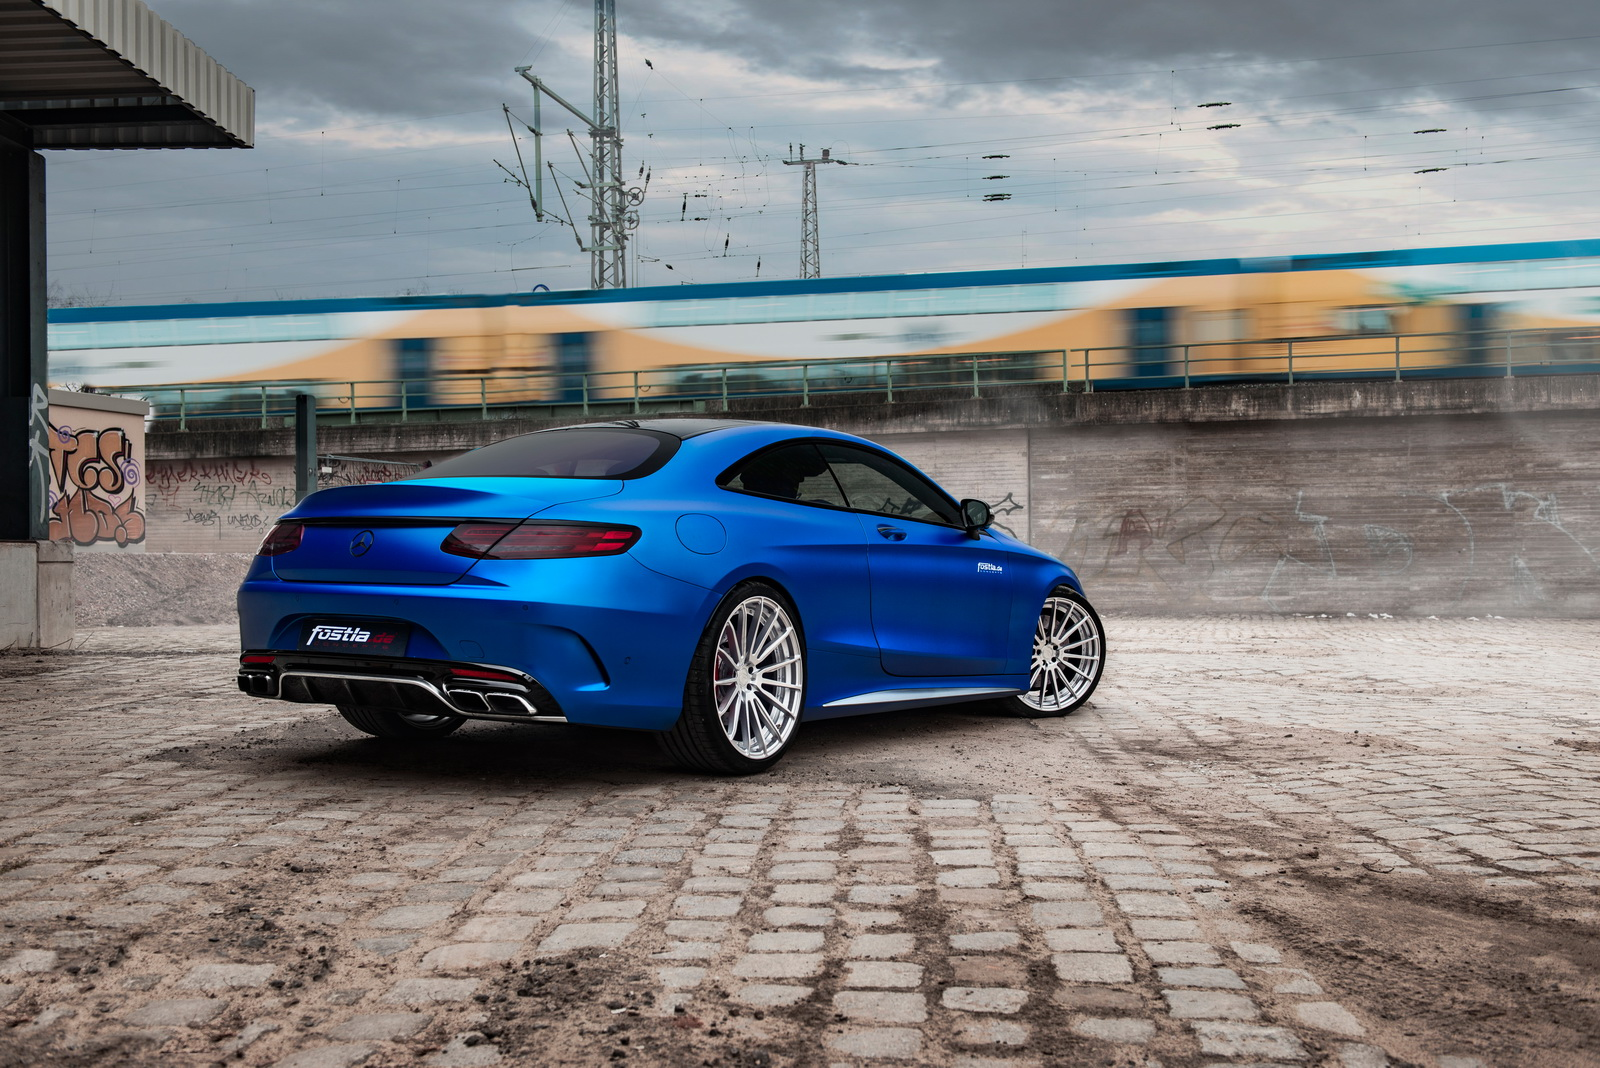 mercedes-amg-s63-s-coupe-fostla-tuning-2